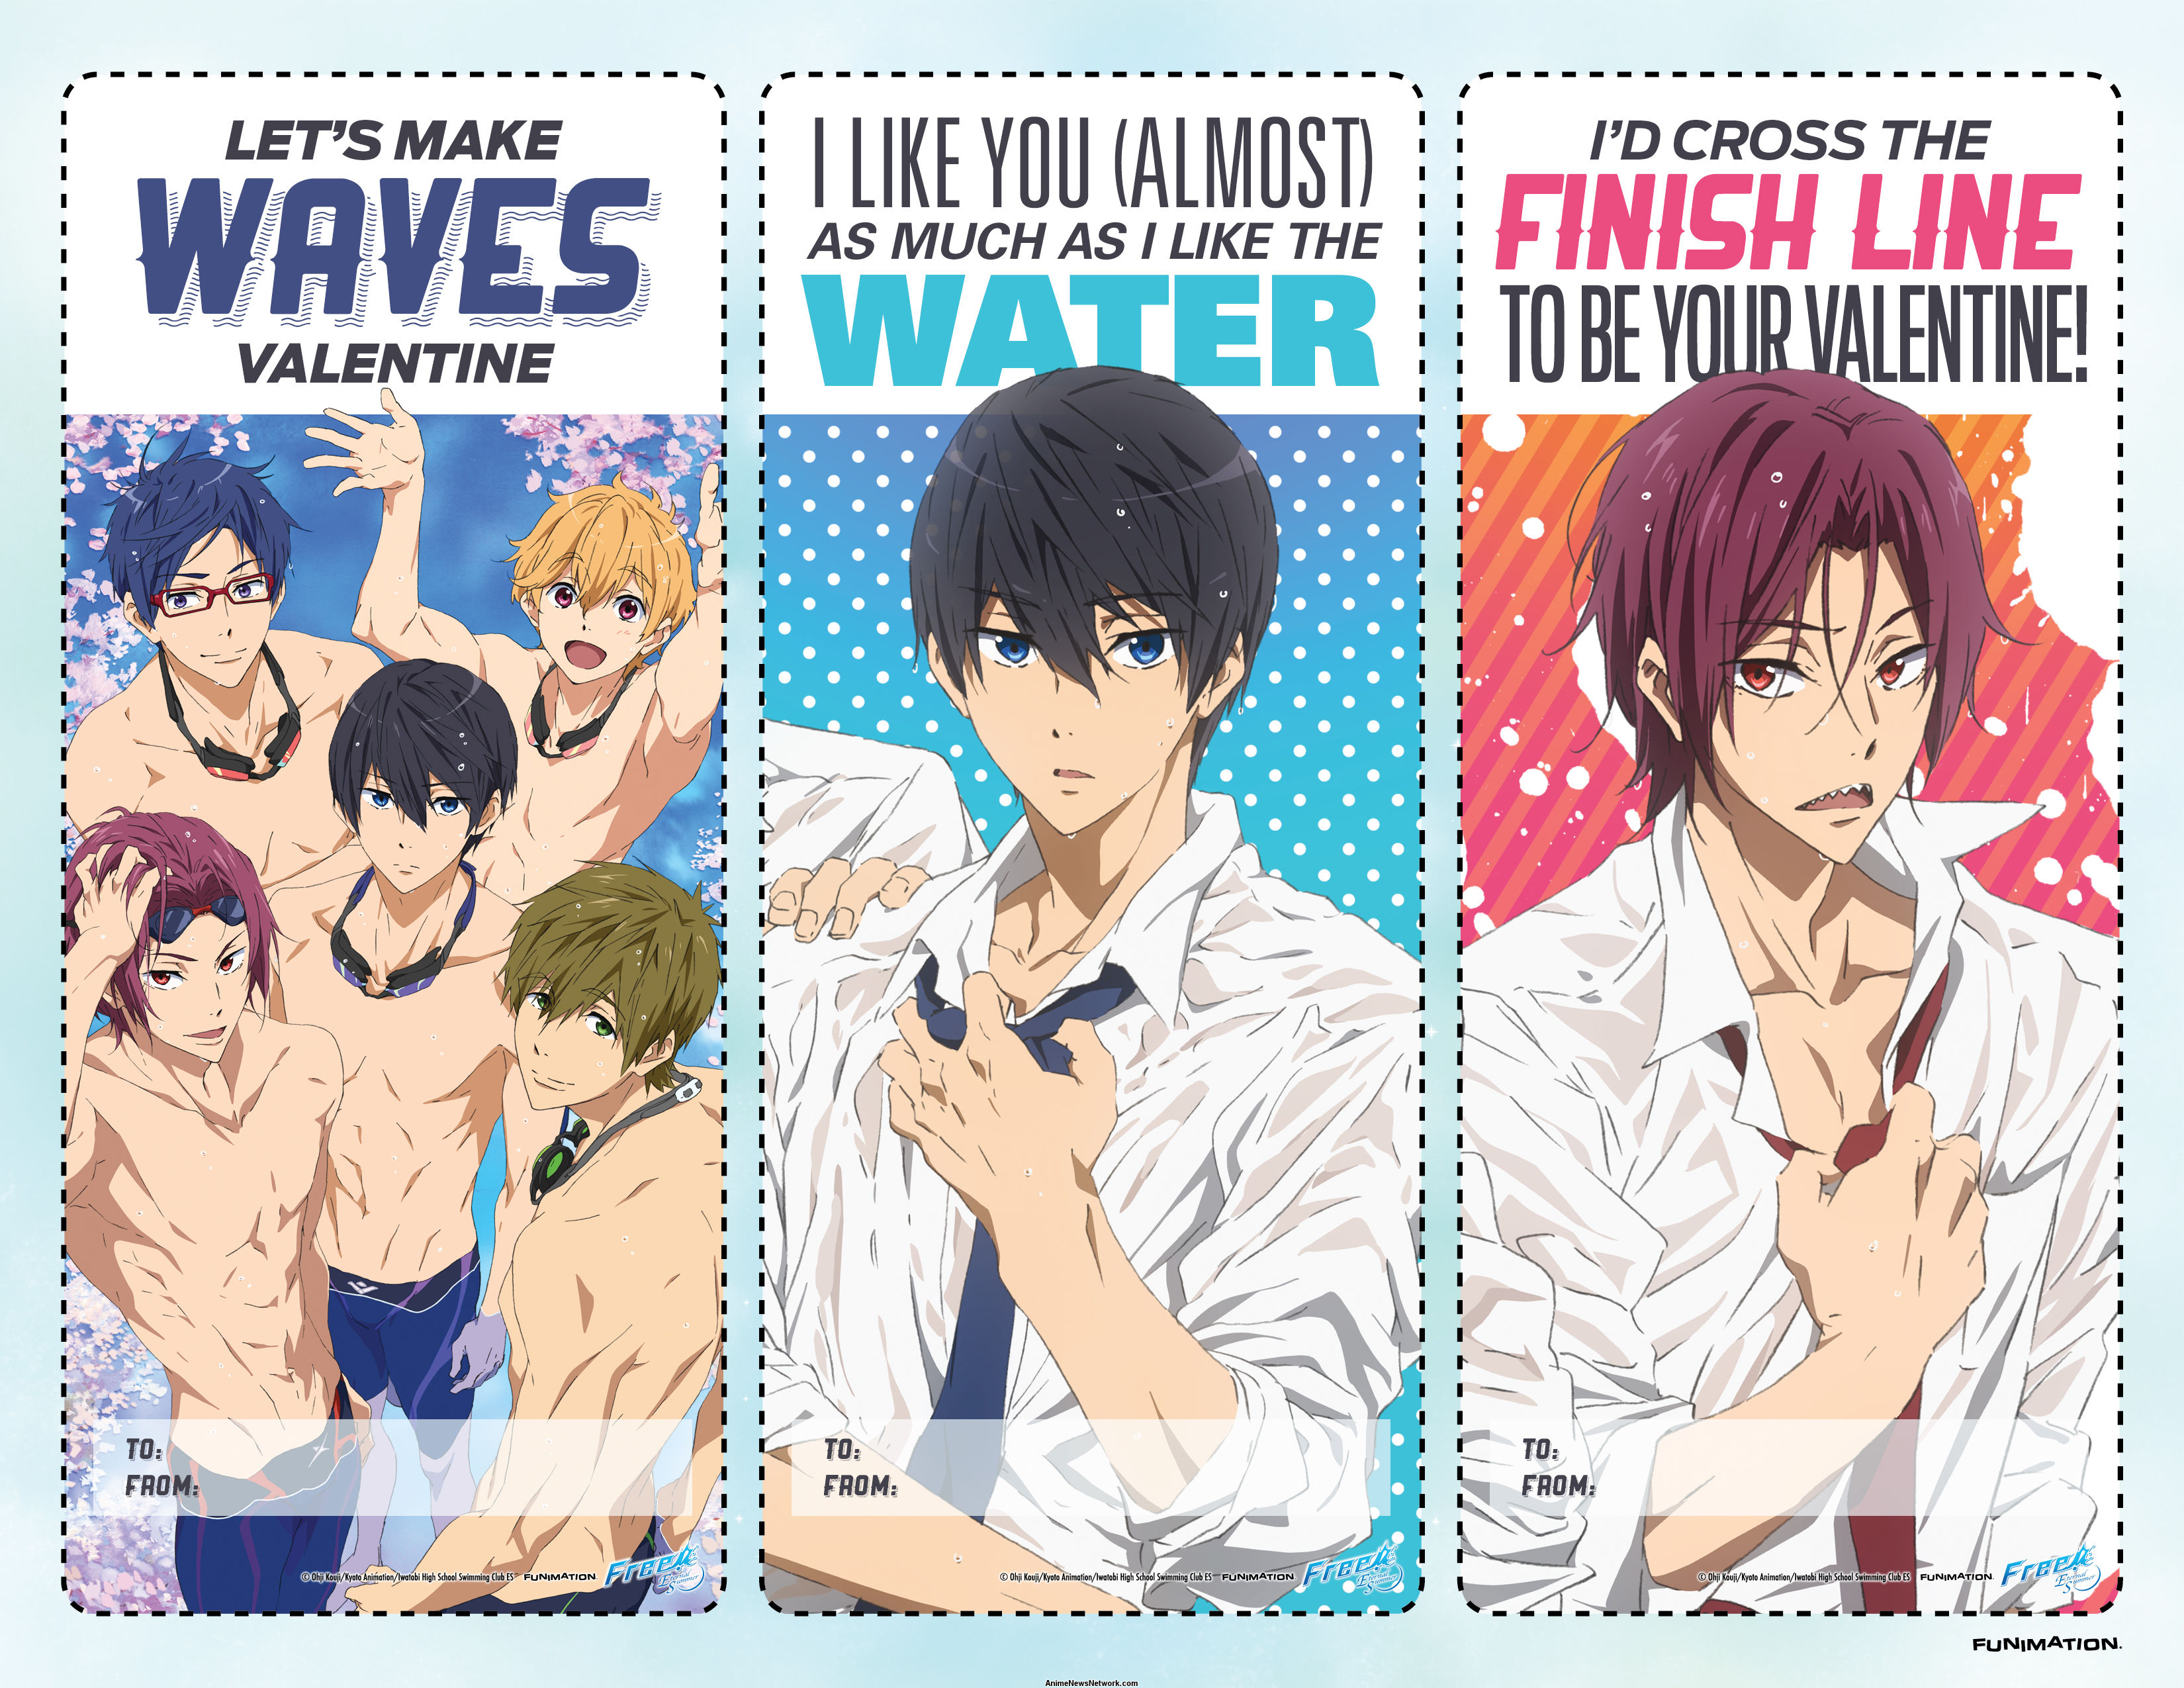 Valentines day anime style interest anime news network link voltagebd Gallery